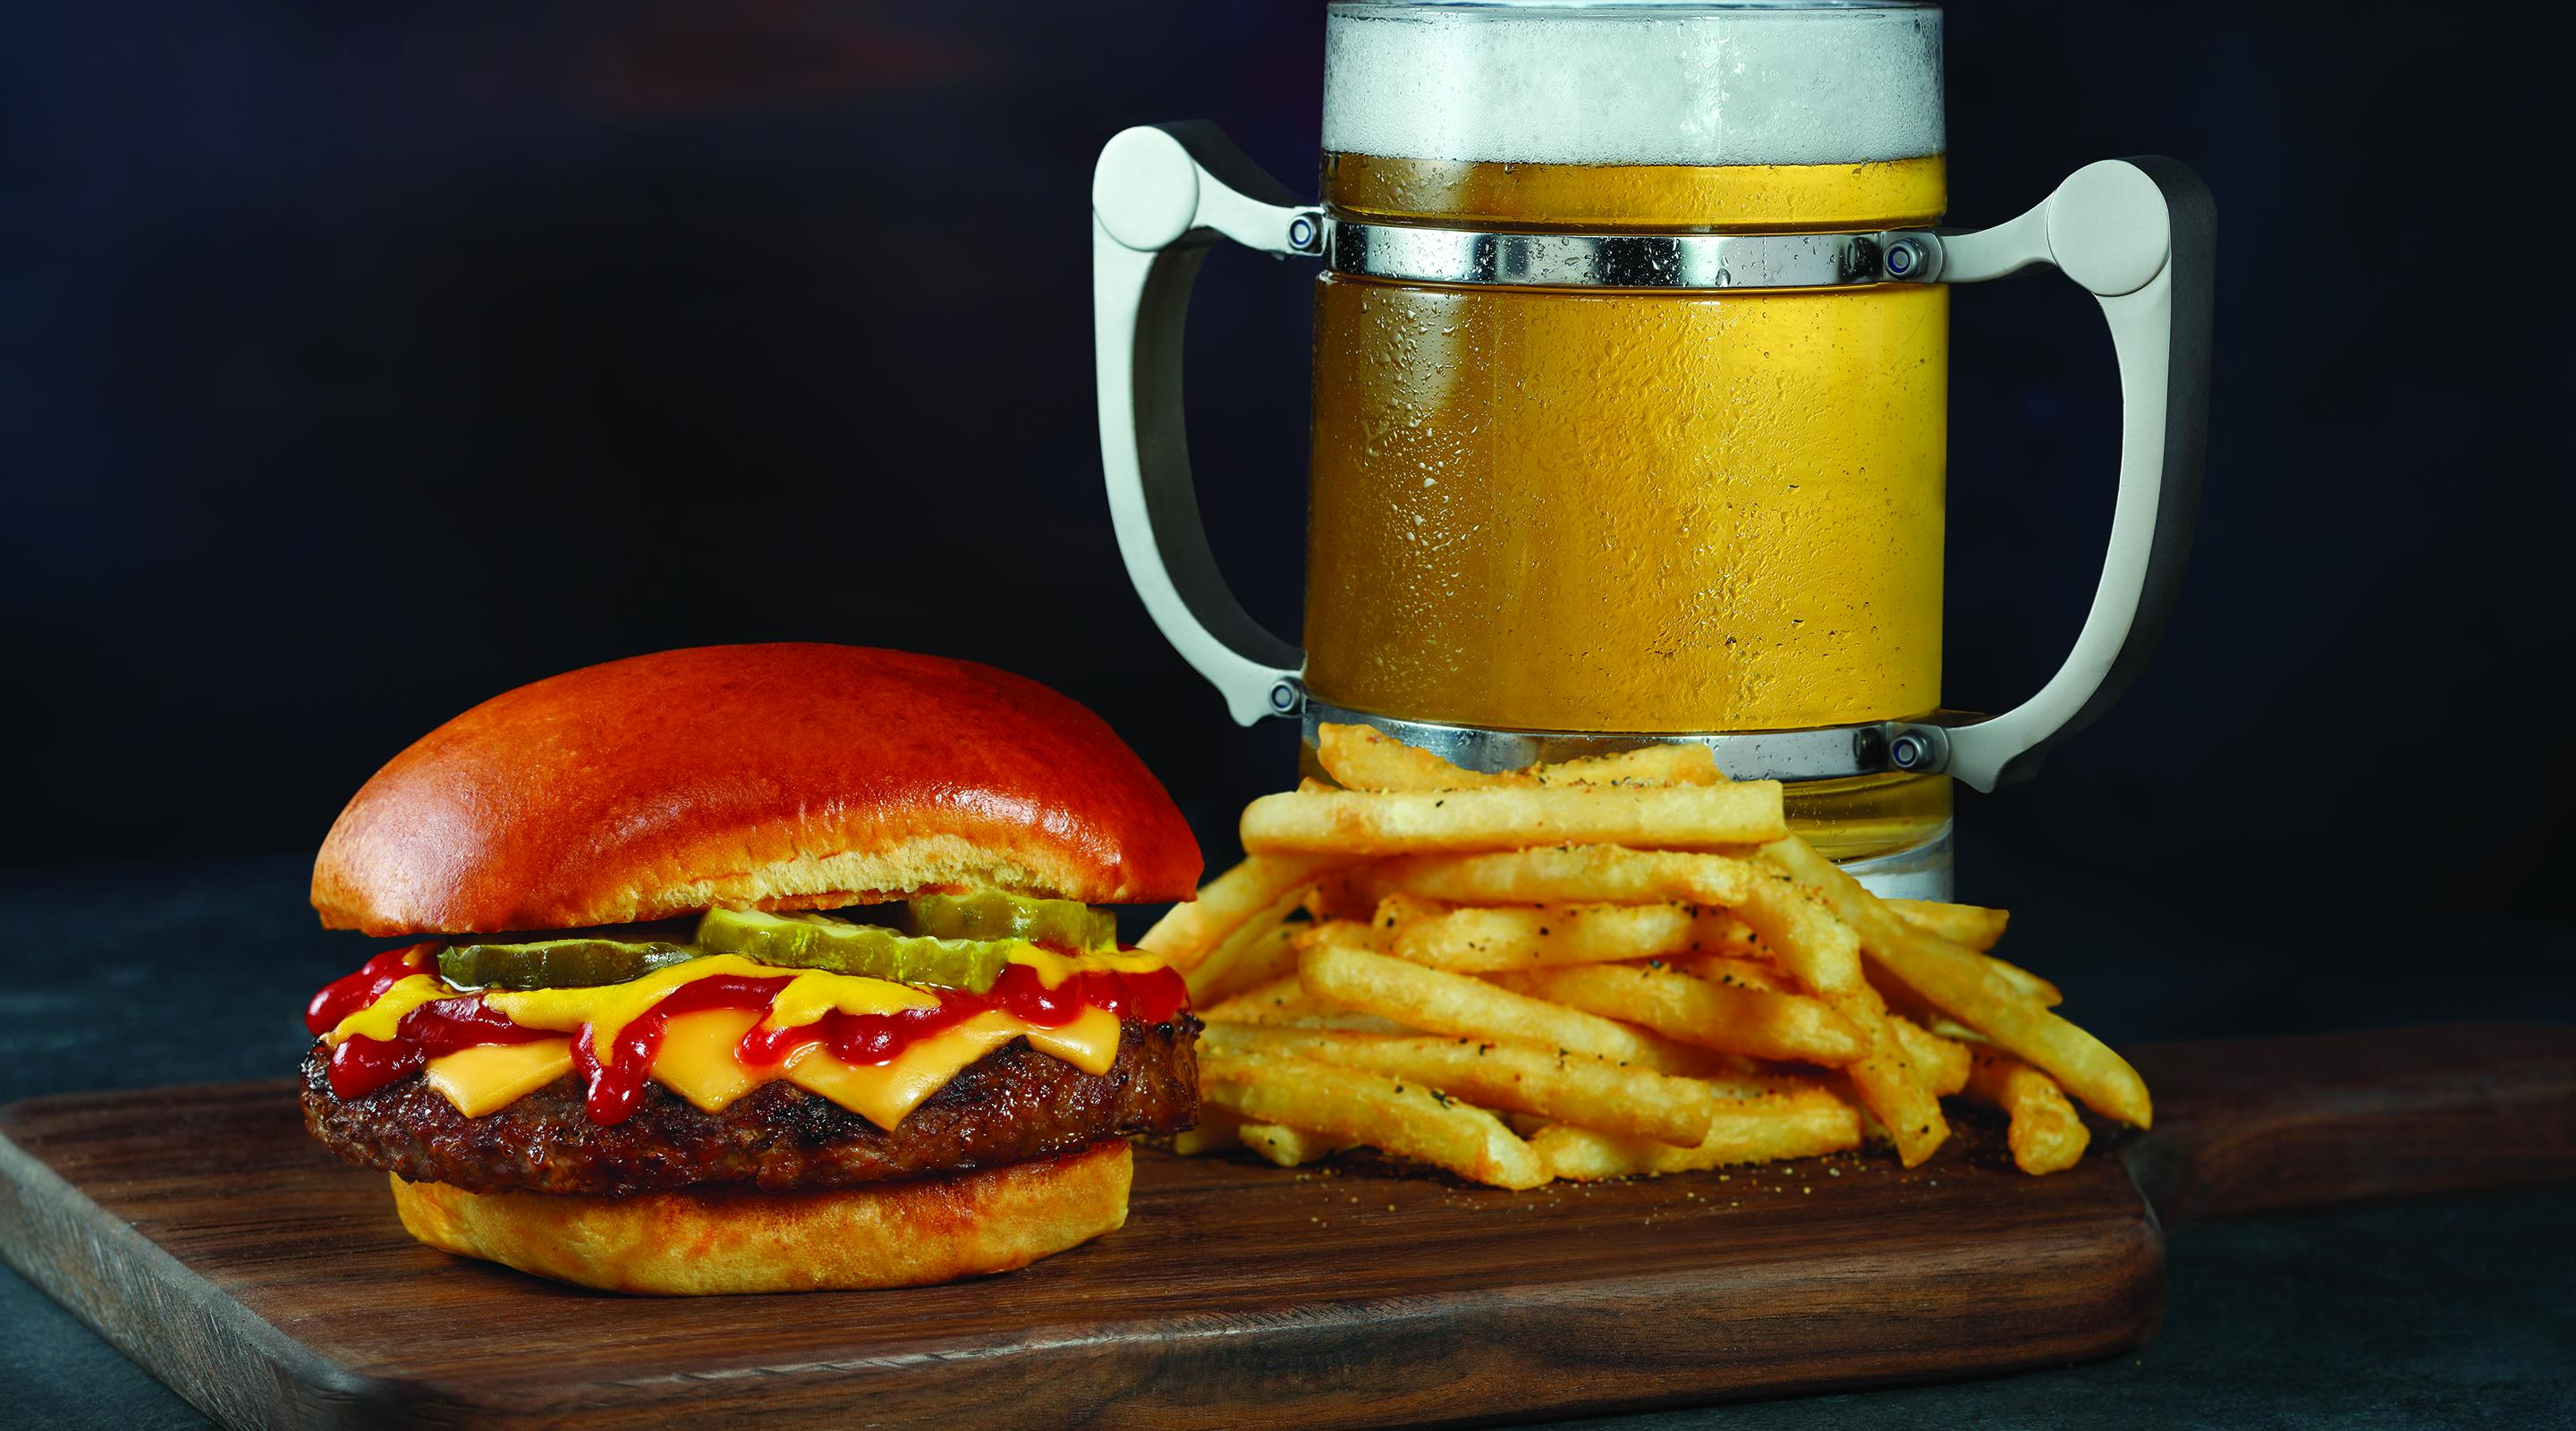 Beer stein with burger and fries from Tom's Urban.